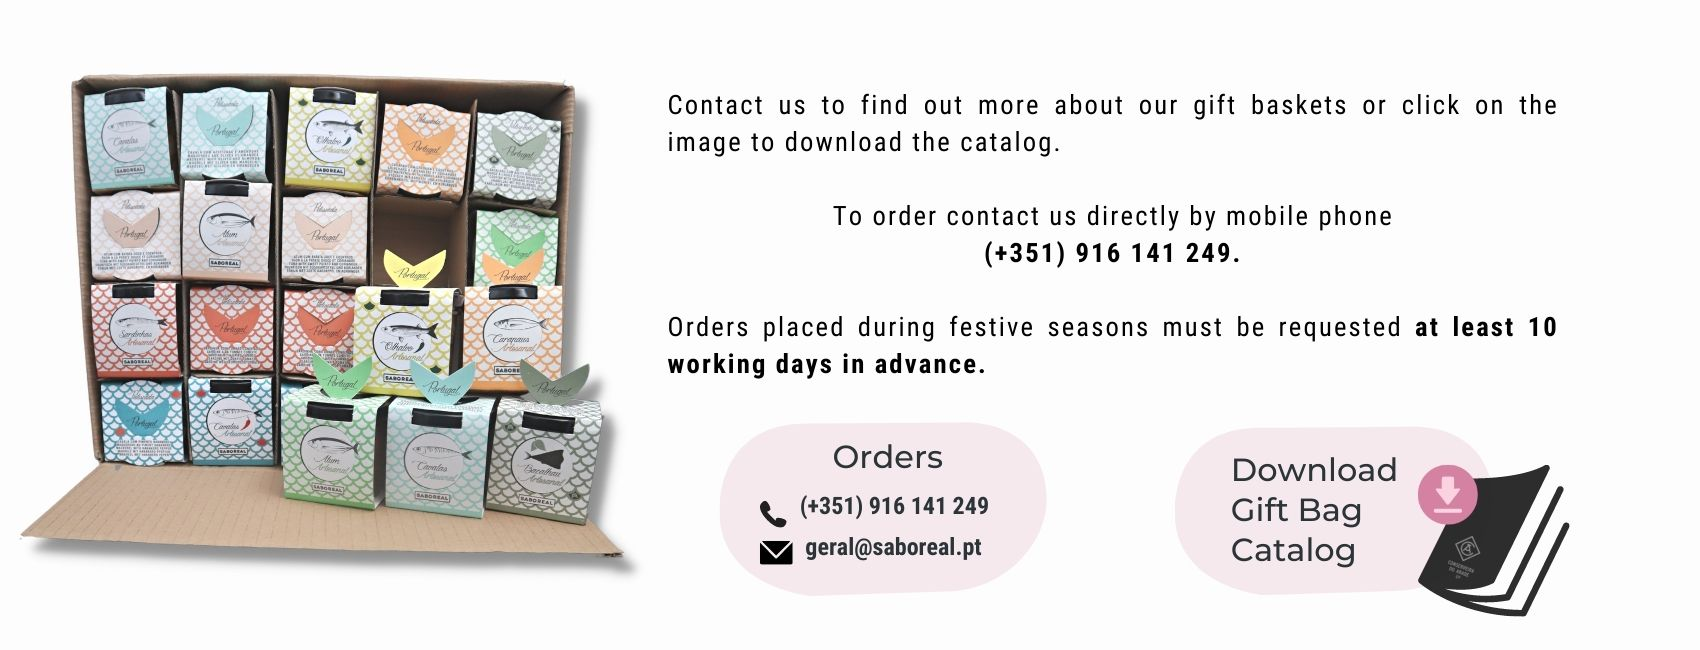 Contact us to find out more about our gift baskets or click on the image to download the catalog.  To order contact us directly by mobile phone (+351) 916 141 249.  Orders placed during festive seasons must be requested at least 10 working days in advance.